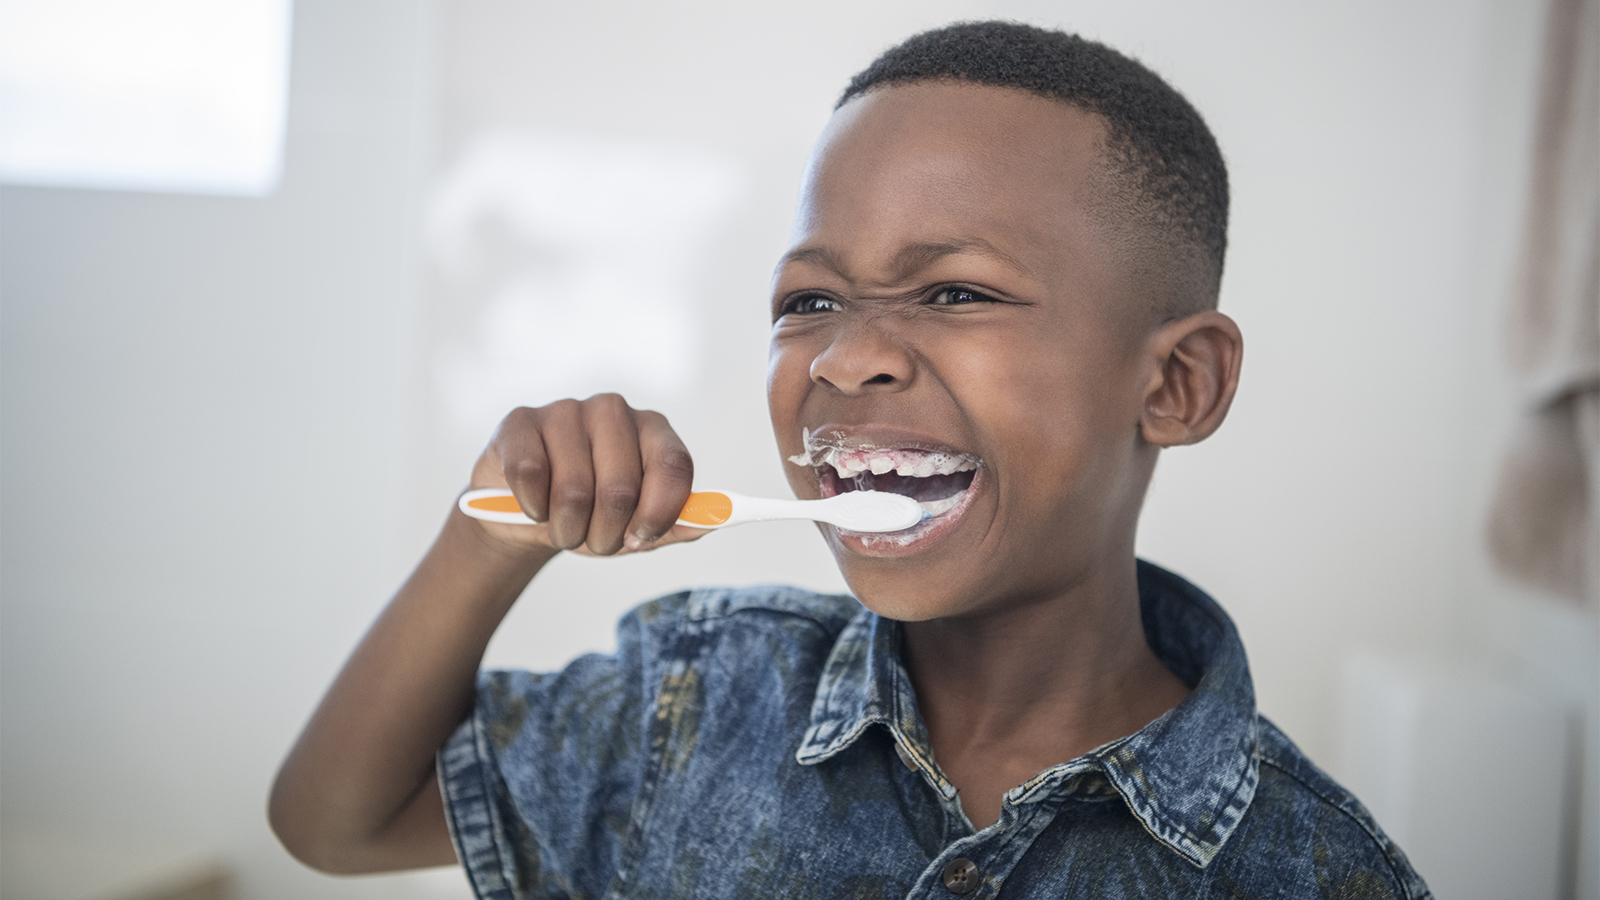 Toothpaste: Too Much of a Good Thing for Kids